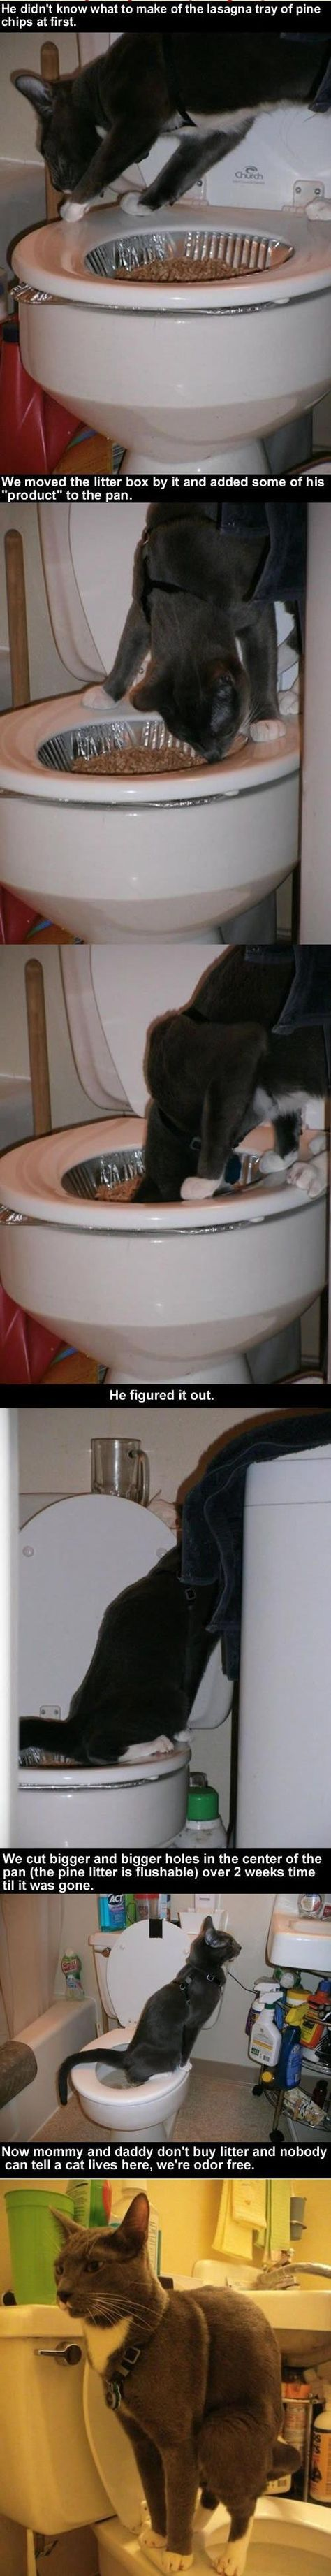 How To Teach Your Cat To Poop In The Toilet cute animals cat cats adorable animal kittens pets kitten interesting good to know Animals And Pets, Funny Animals, Cute Animals, Funny Pets, Crazy Cat Lady, Crazy Cats, Bb Chat, Gatos Cats, Litter Box